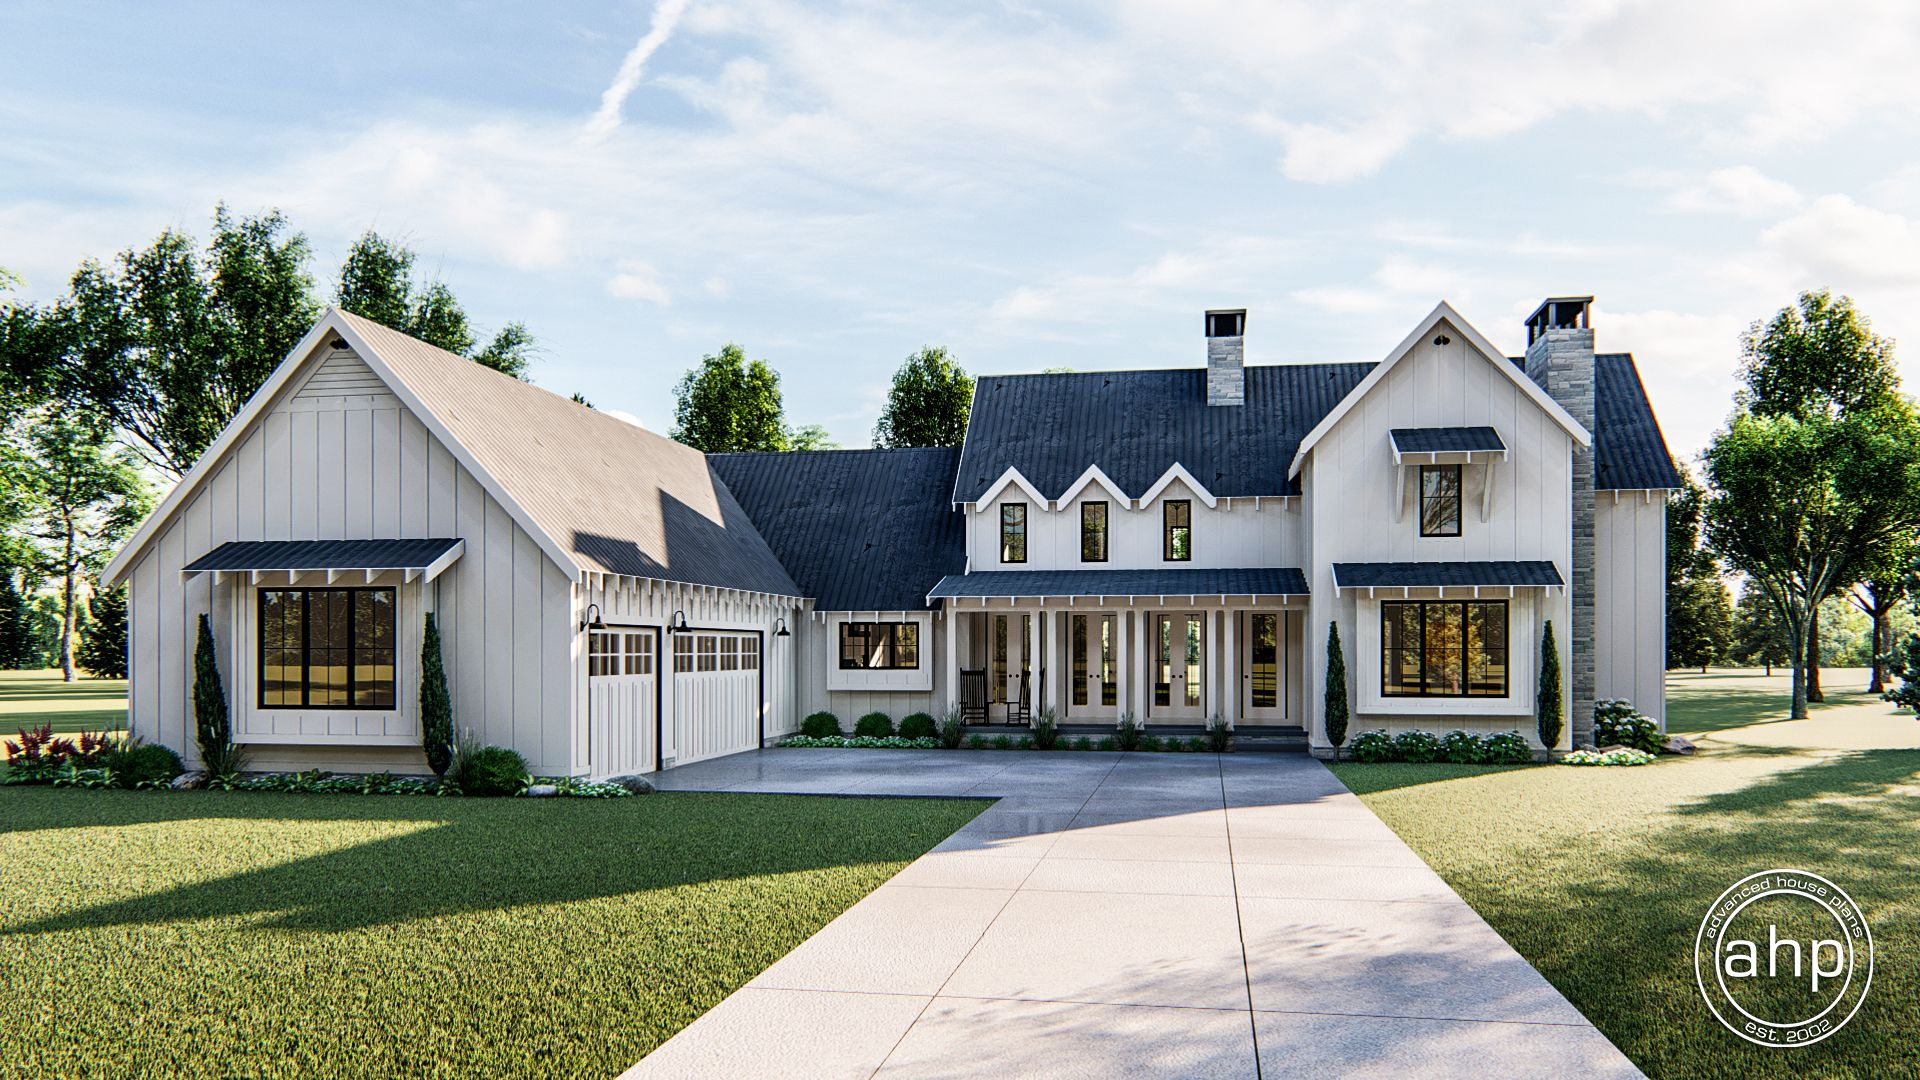 1.5 story Modern Farmhouse plan with cathedral ceilings and 4 bedrooms